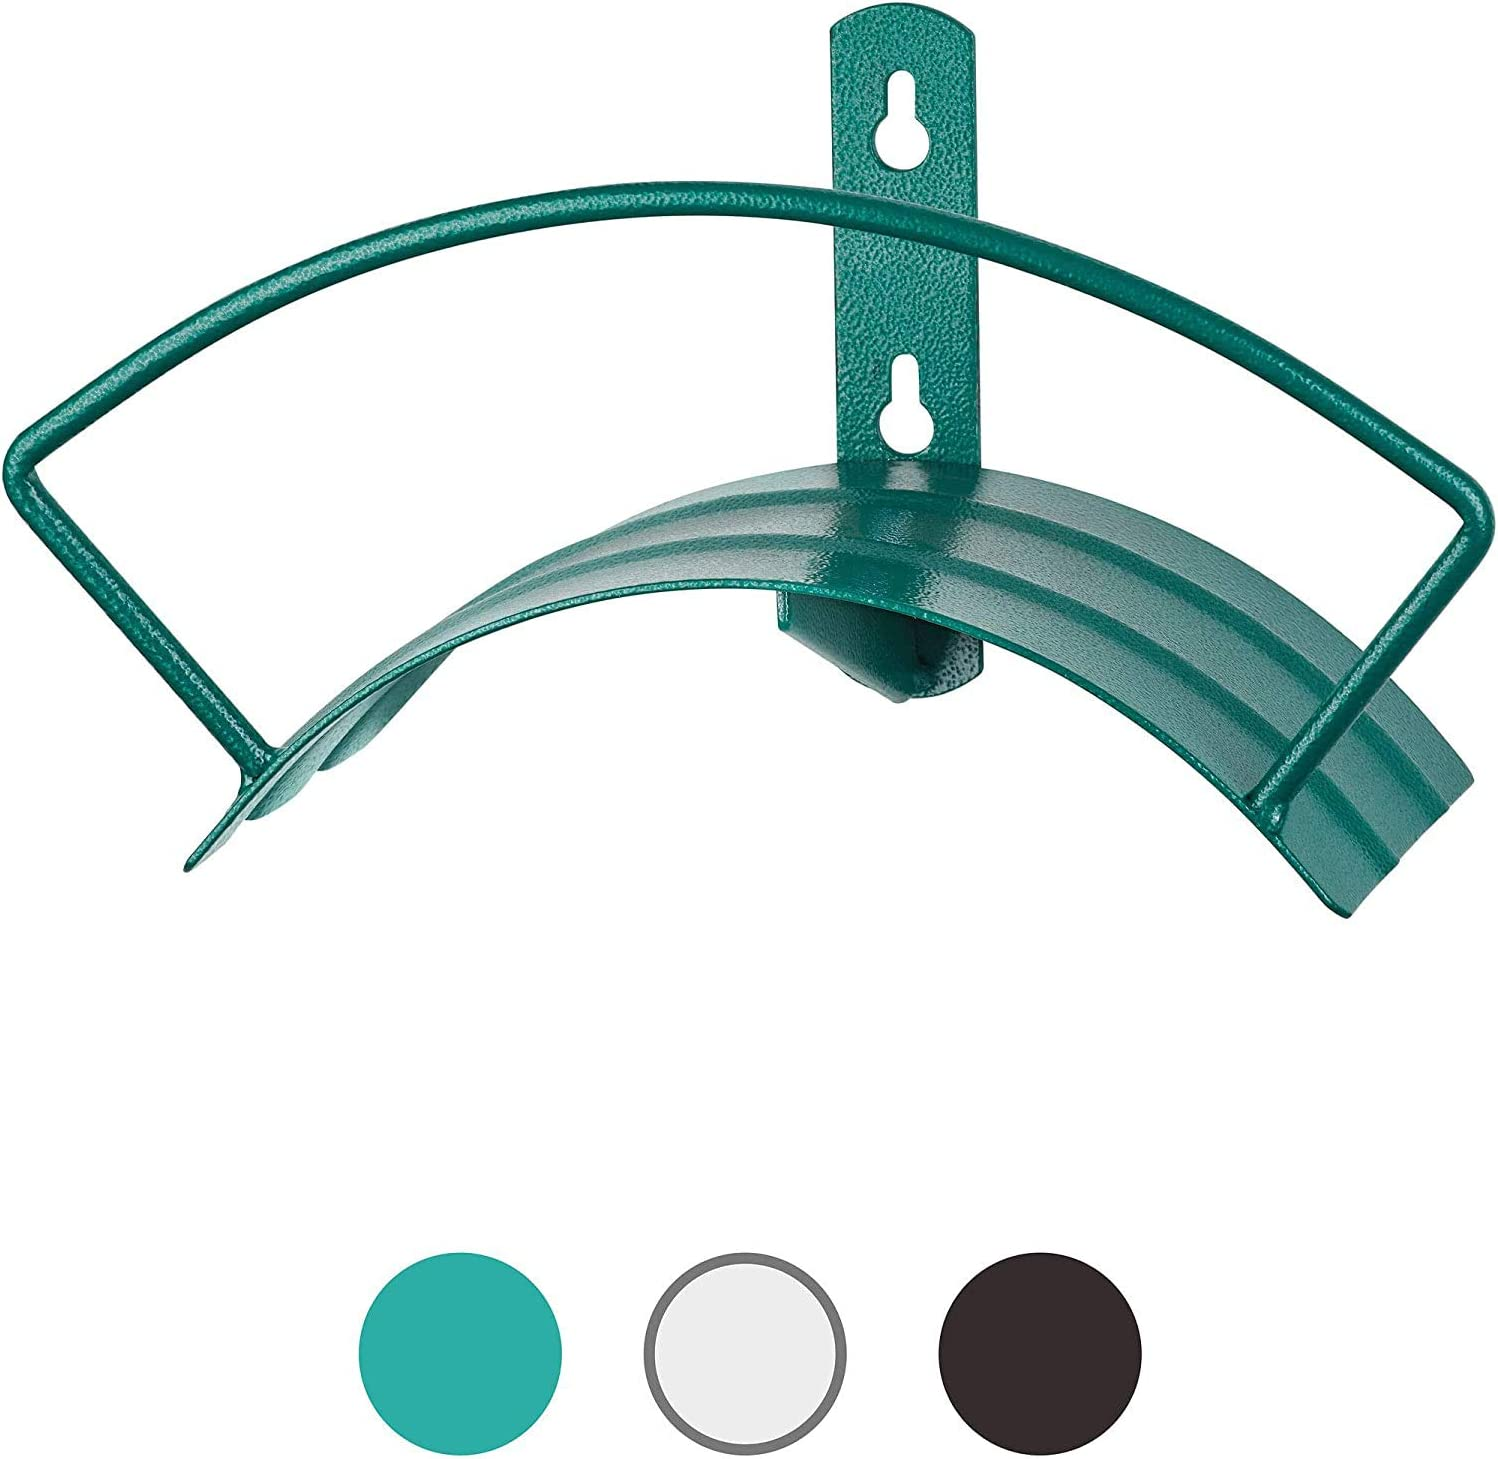 Quality Choices Metal Garden Water Hose Holder – Rust-Resistant Coated Steel Hanger for 150 ft. Standard Wall Mount Garden Hose Rack (Green)